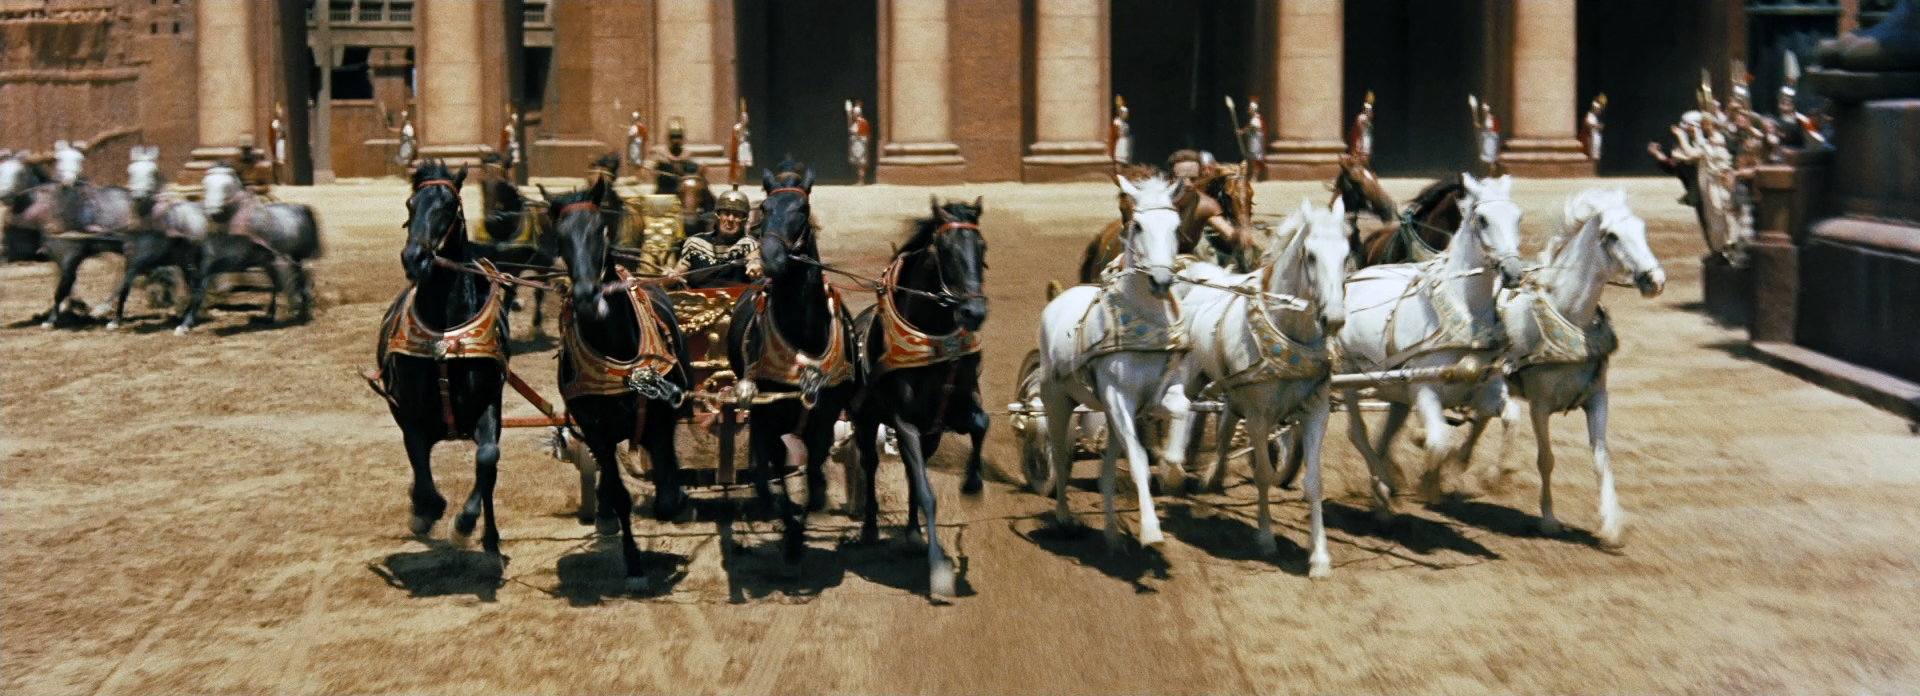 Chariot Racing from the Ben Hur Film